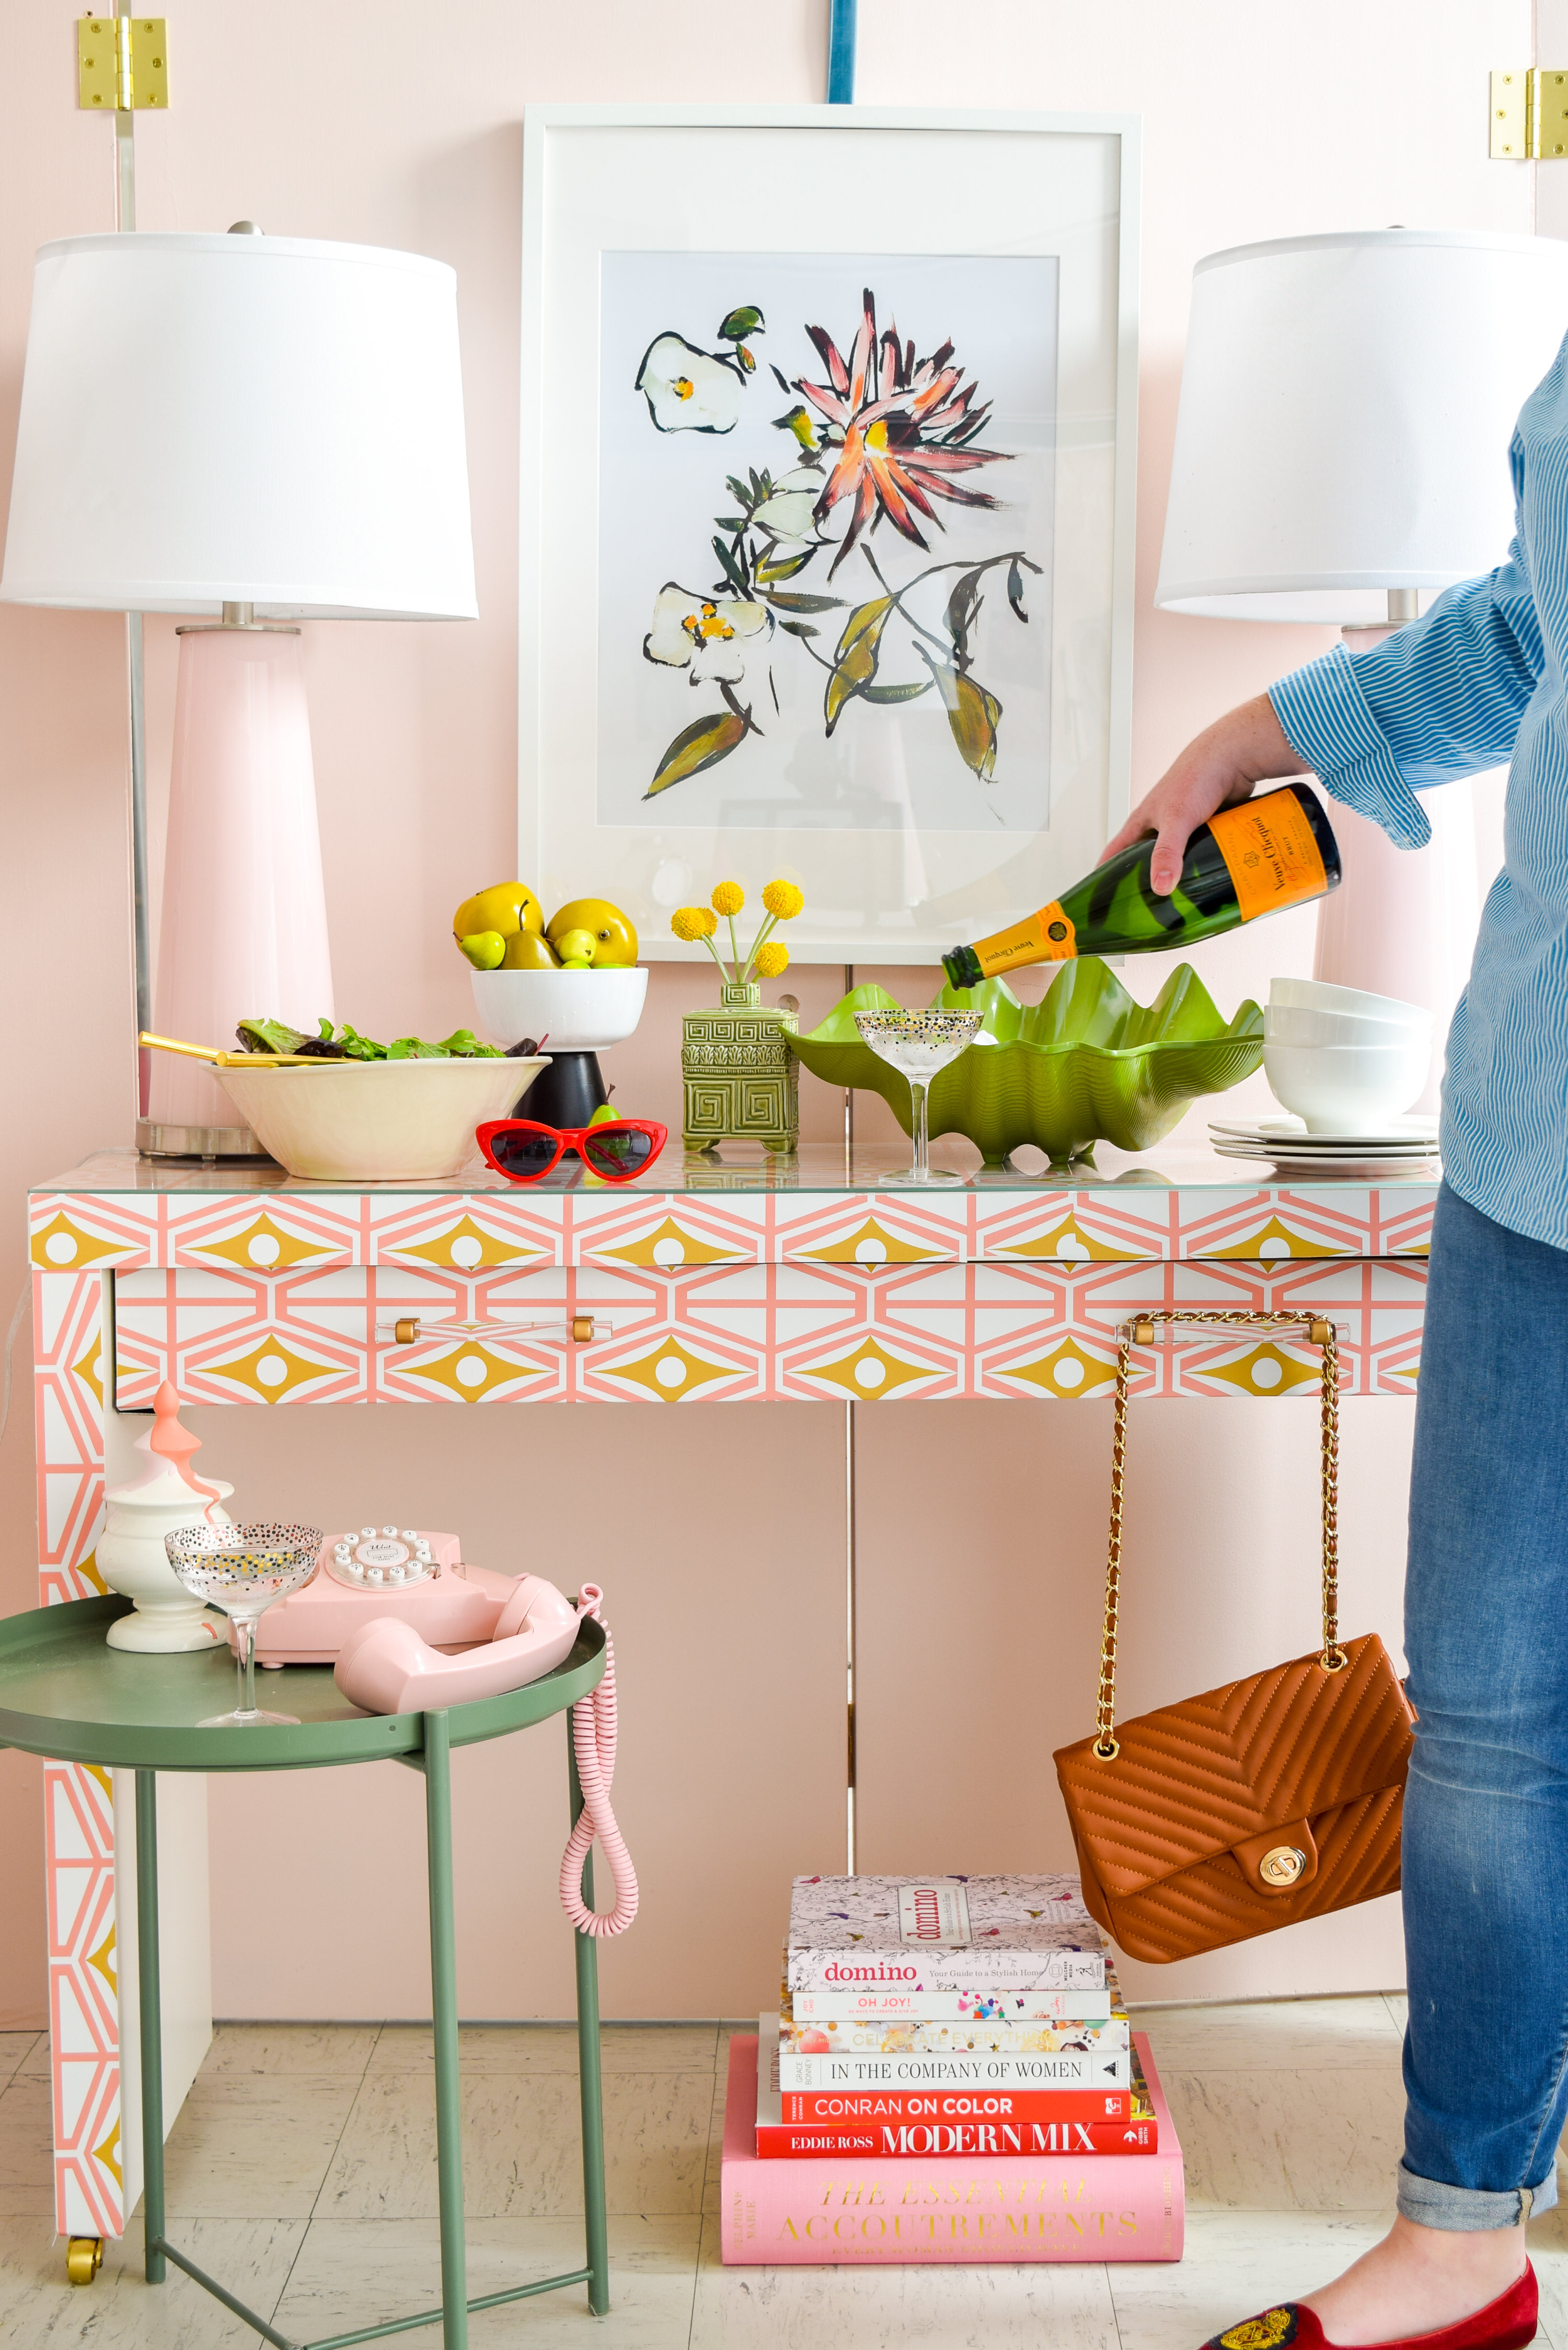 Breathe new life into some old IKEA furniture with fresh hardware, and a bold print. DIY an IKEA Sideboard Hack using Spoonflower's removable wallpaper designs, coupled with Liberty Brand Hardware, to create a striking piece, and an entertaining classic: a movable bar cart and sideboard.